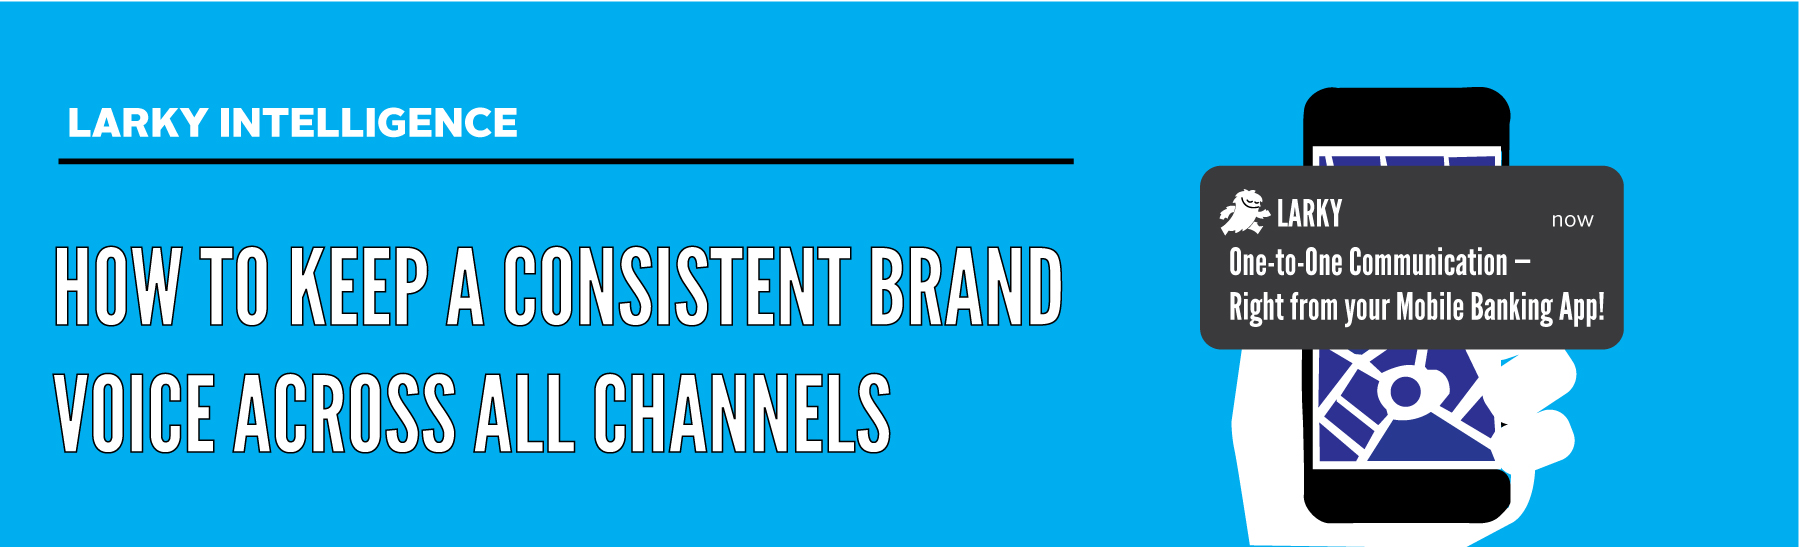 How to Keep a Consistent Brand Voice Across All Channels